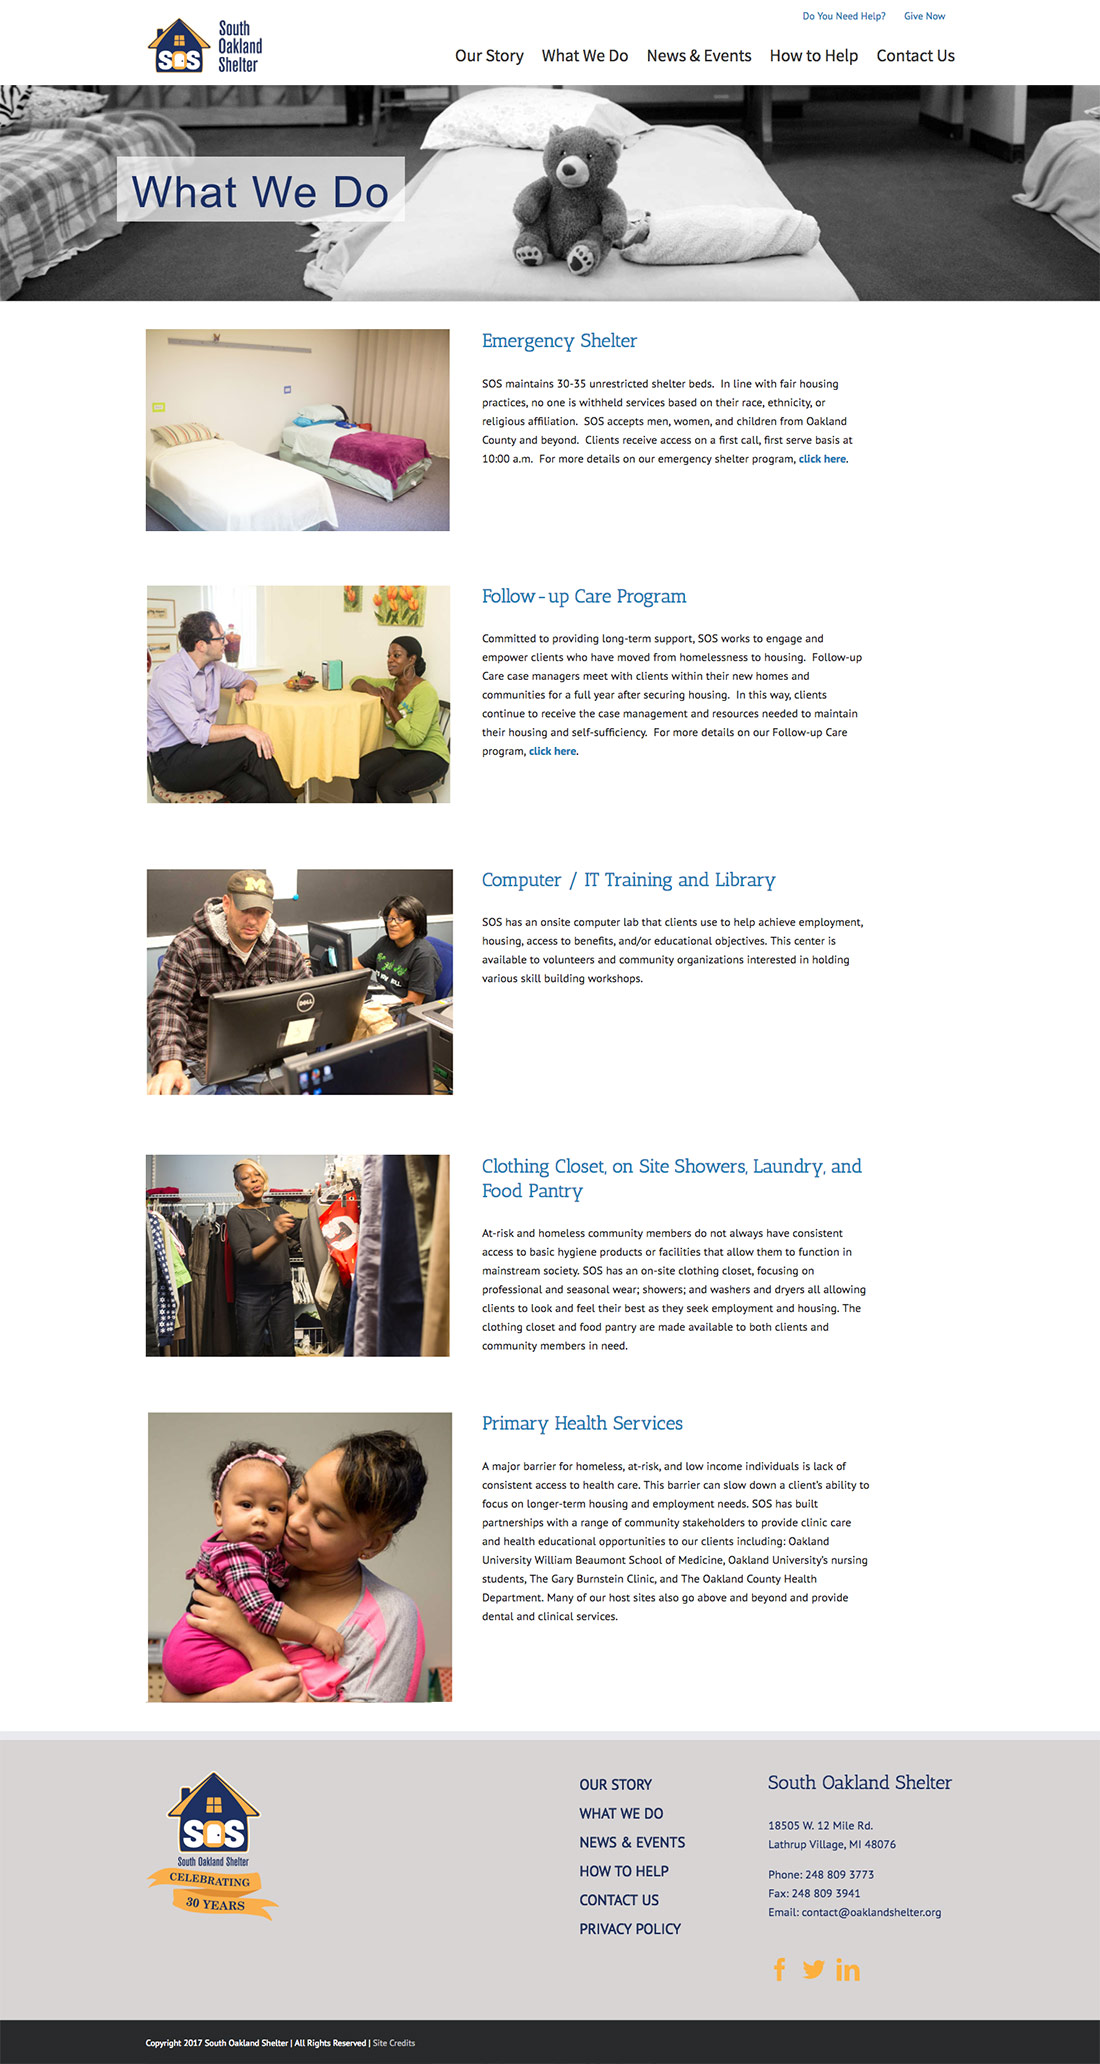 South Oakland Shelter Website - What We Do Page